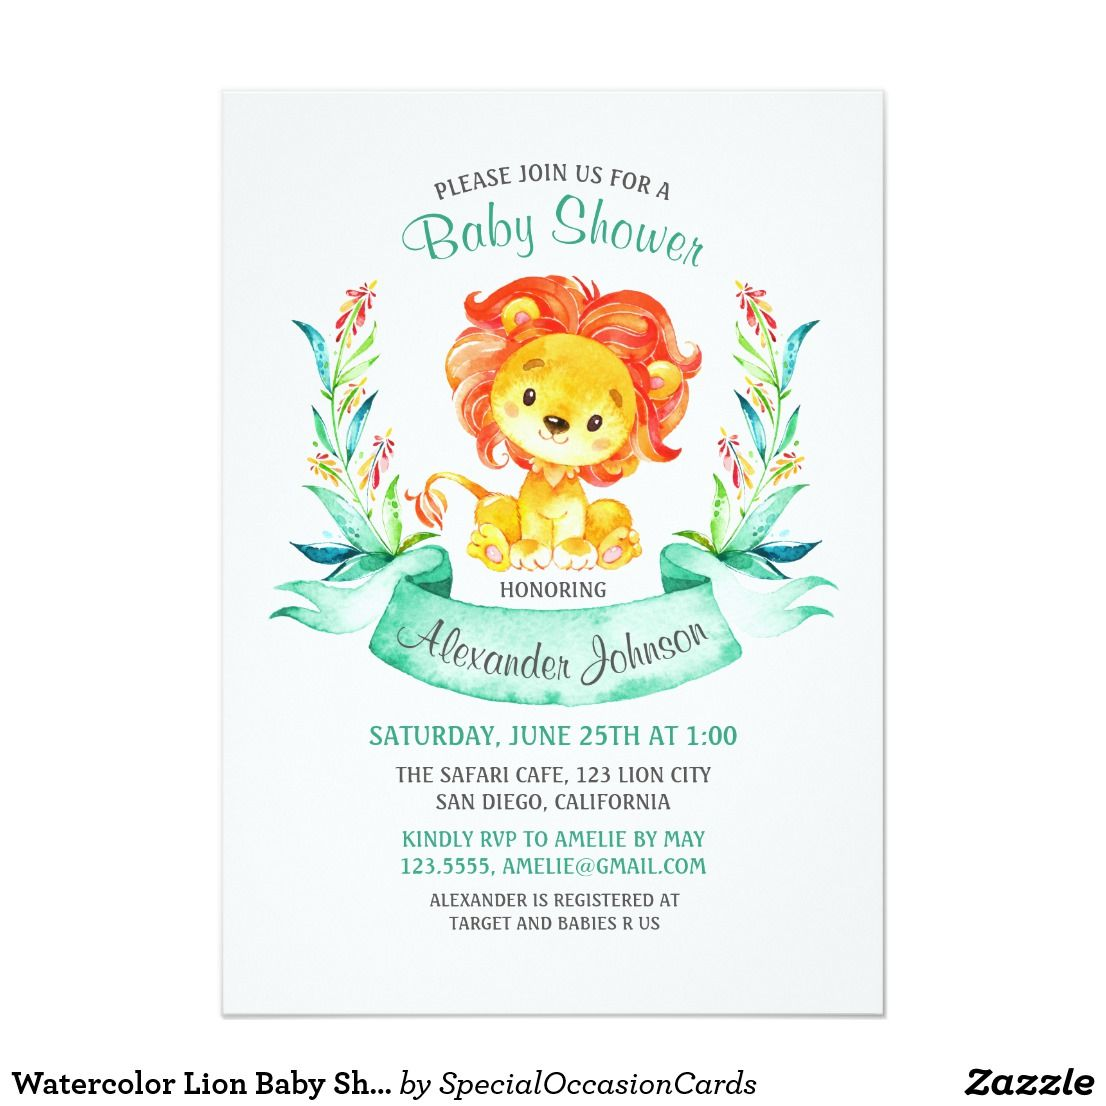 Watercolor Lion Baby Shower Invitation | Lion baby shower and Shower ...